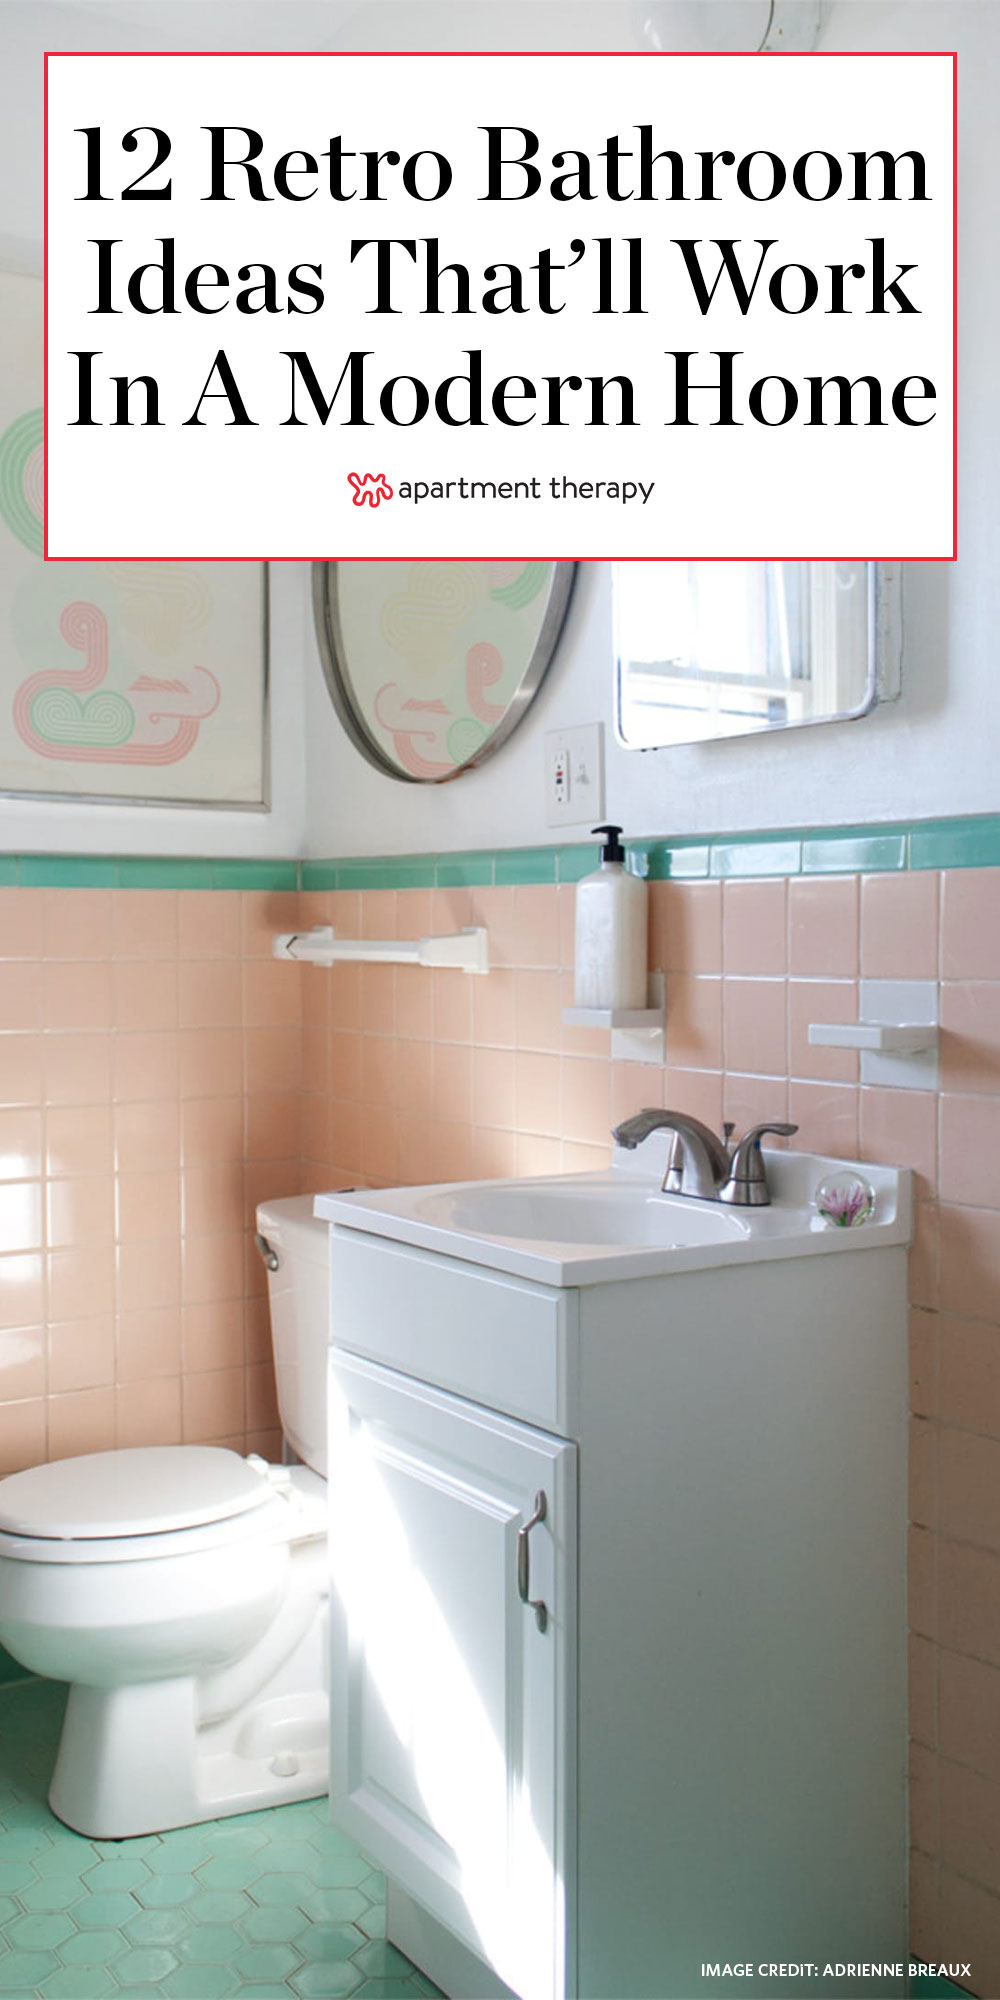 12 Retro Bathroom Ideas Cool Old Style Bathroom Photos Apartment Therapy